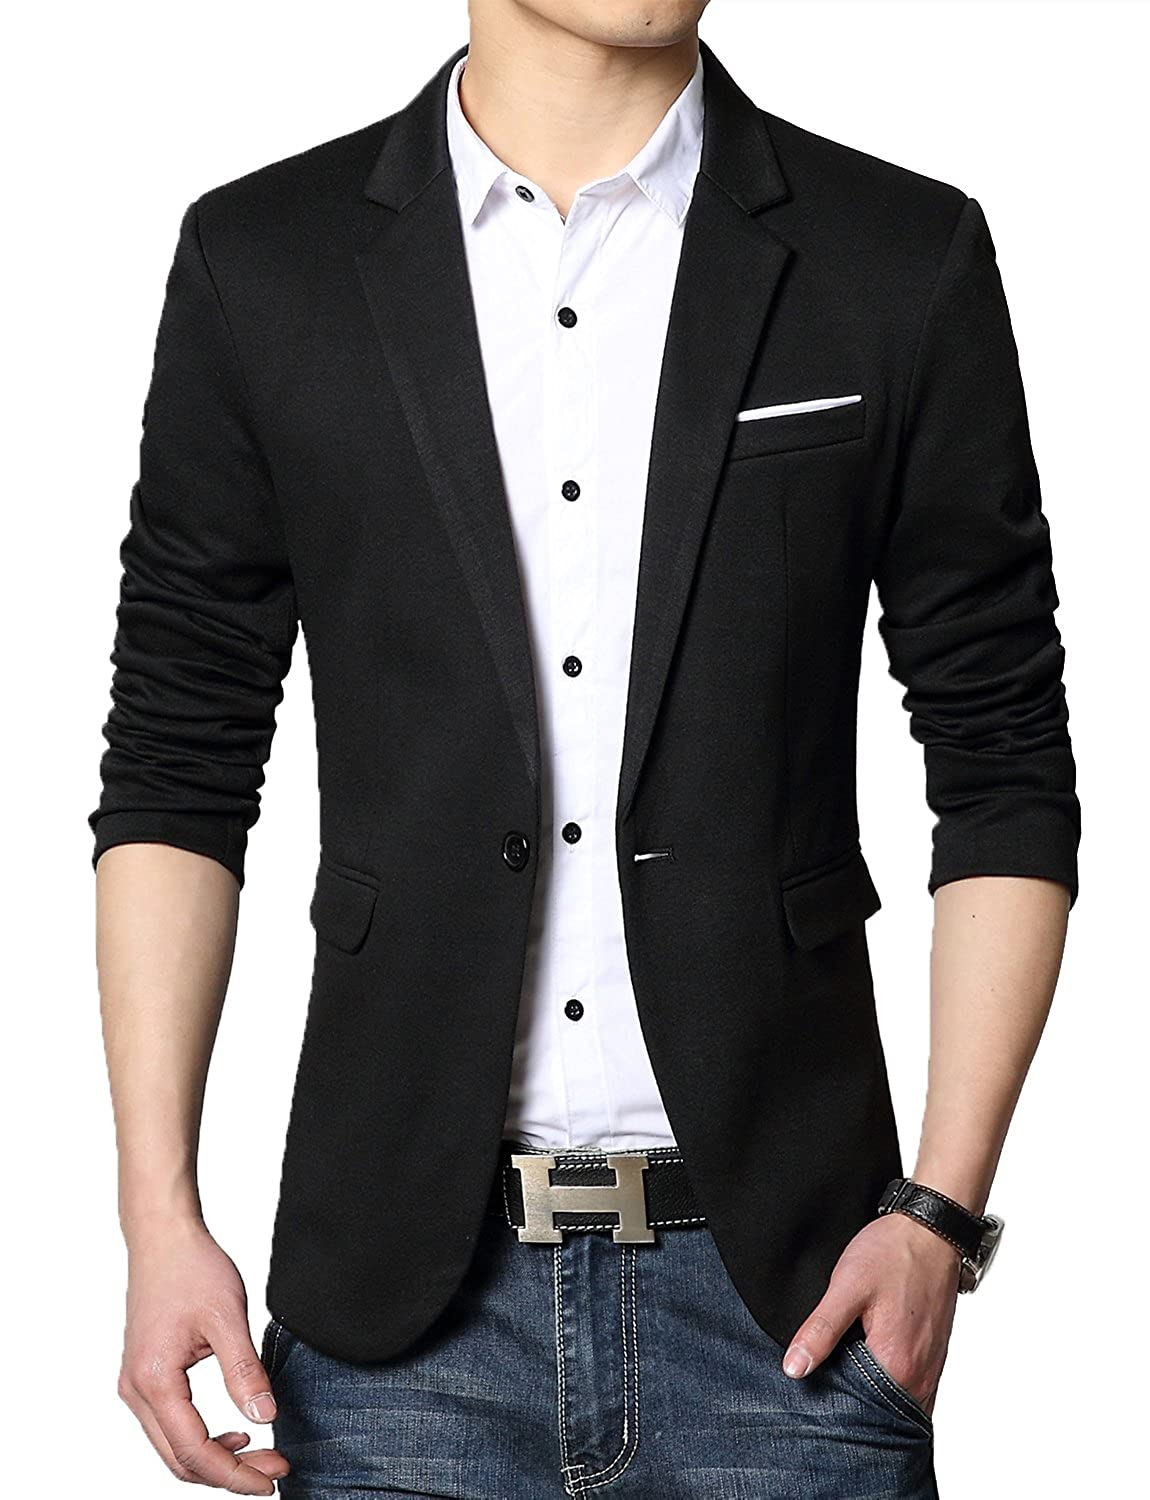 5513348c9f ANN Men s Slim Fit Casual One Button Blazer Jacket at Amazon Men s Clothing  store